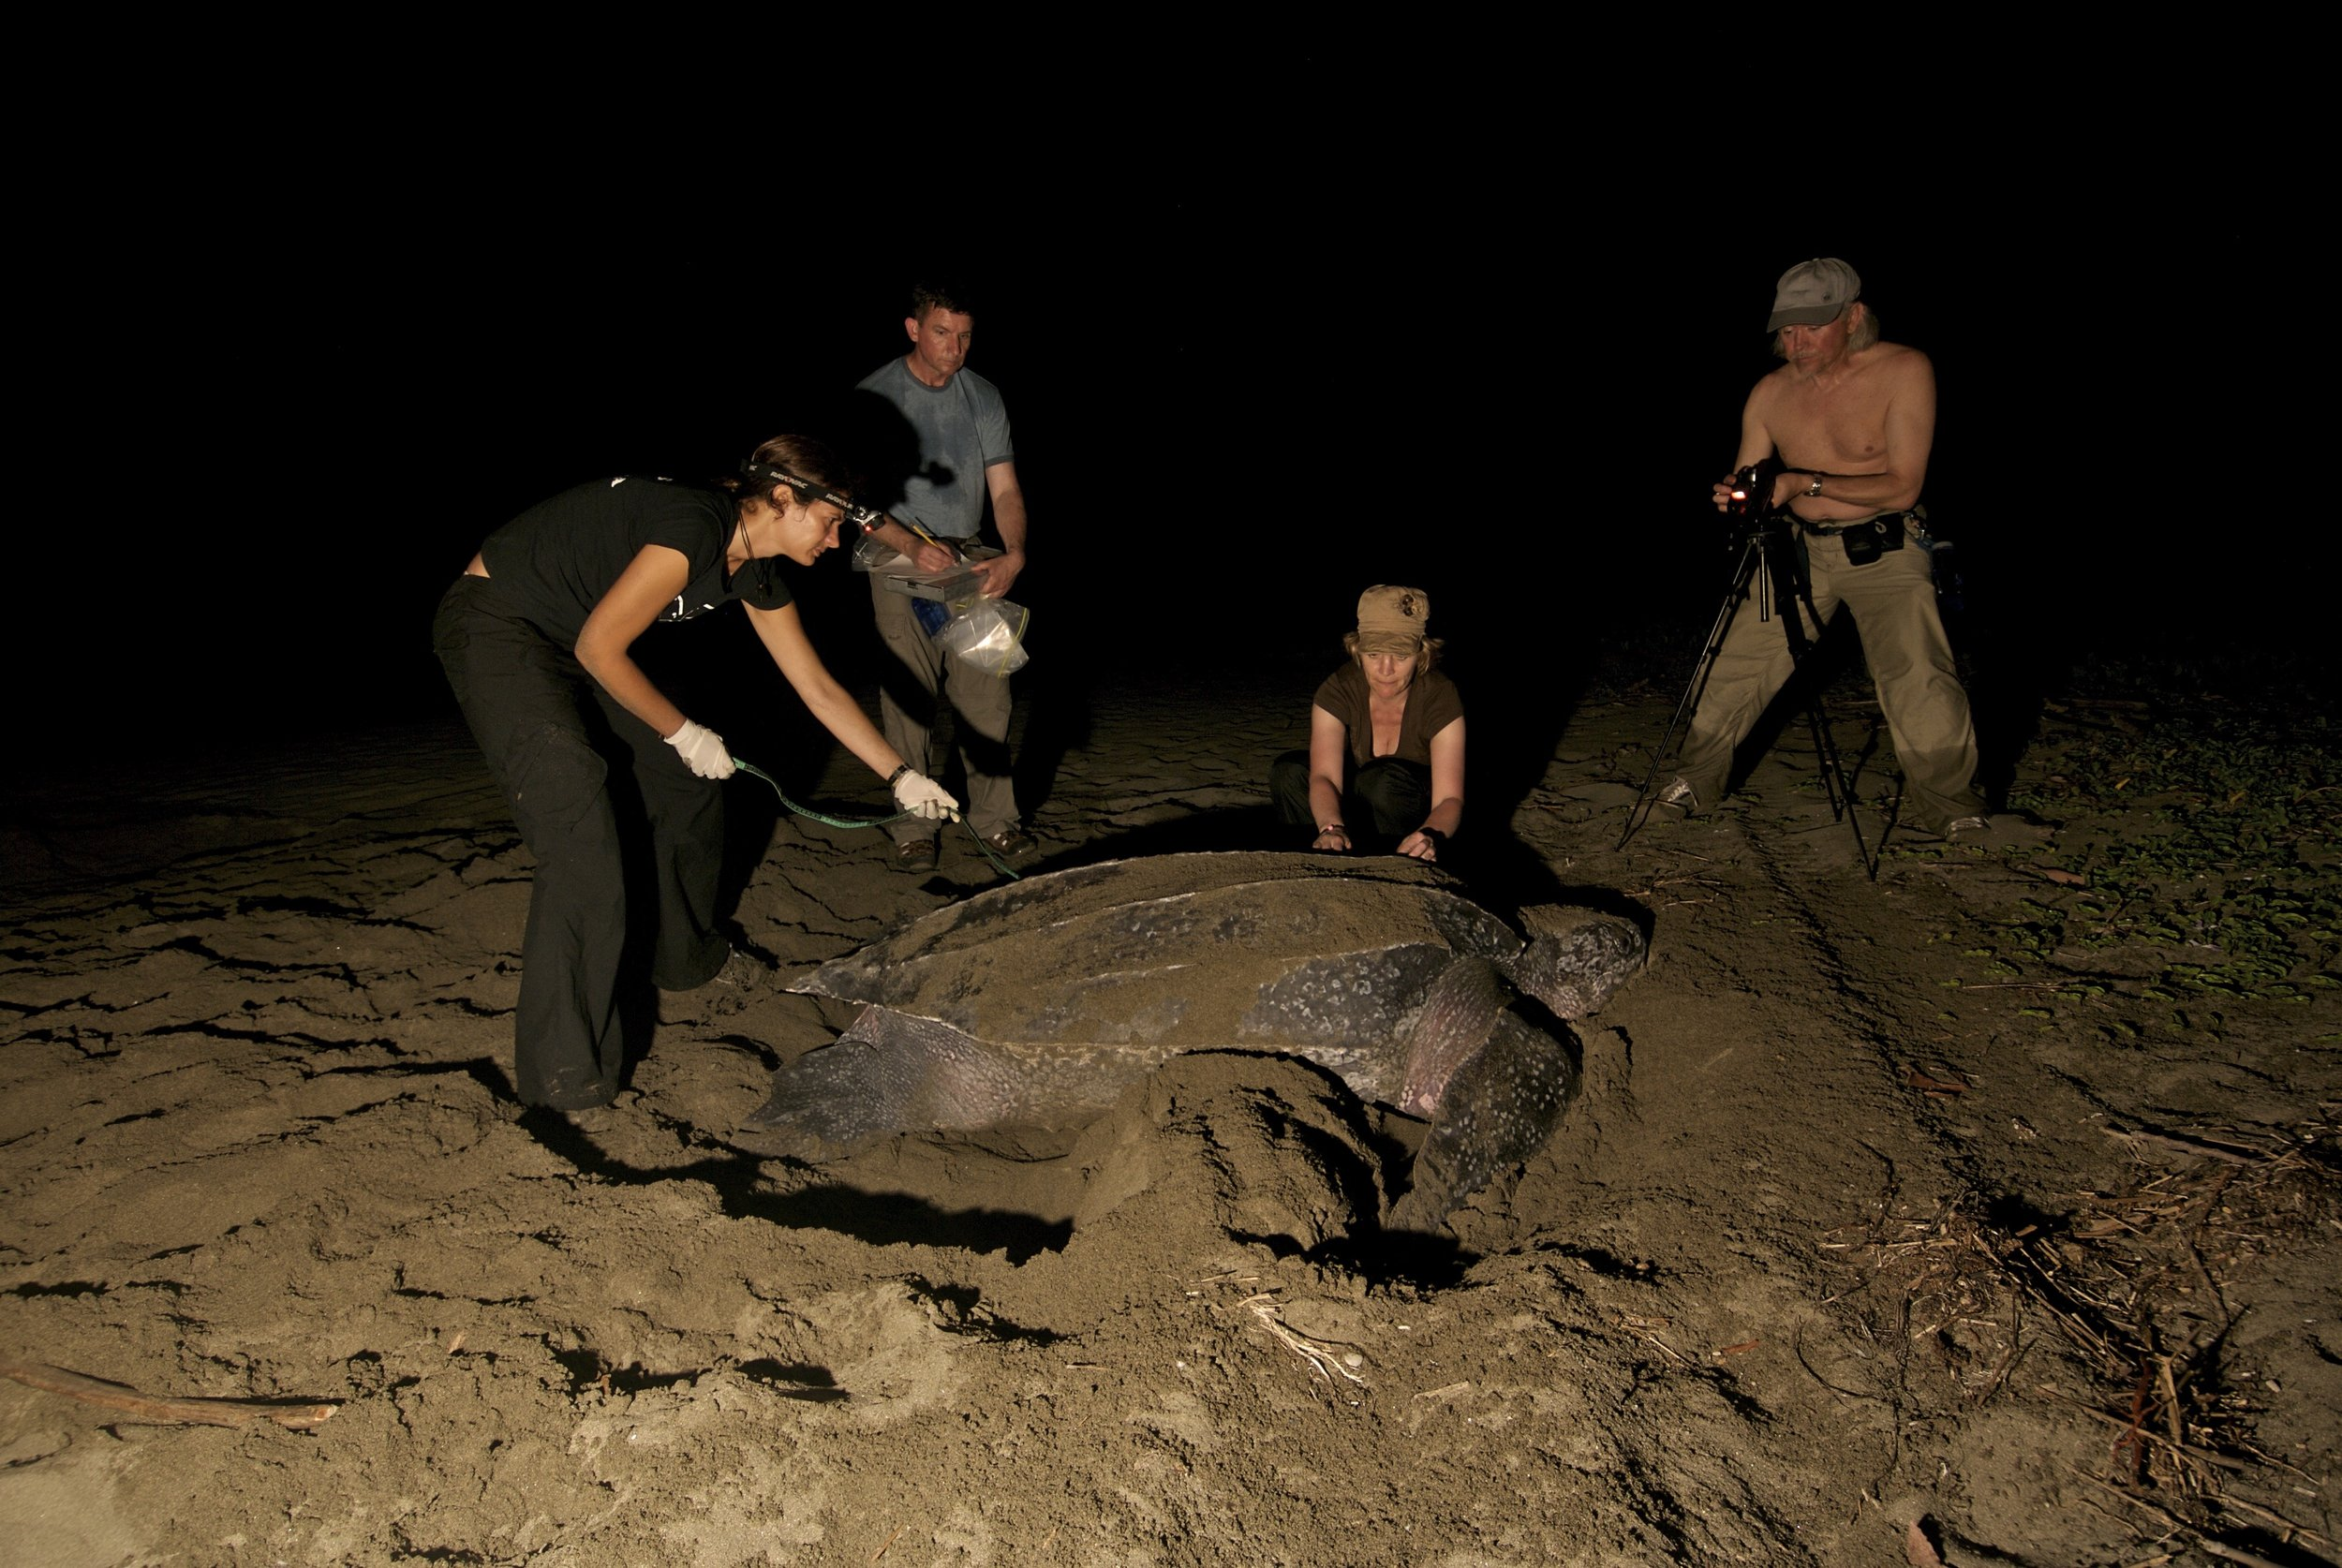 Night 2: First night patrol on the turtle nesting beach to look for leatherbacks.